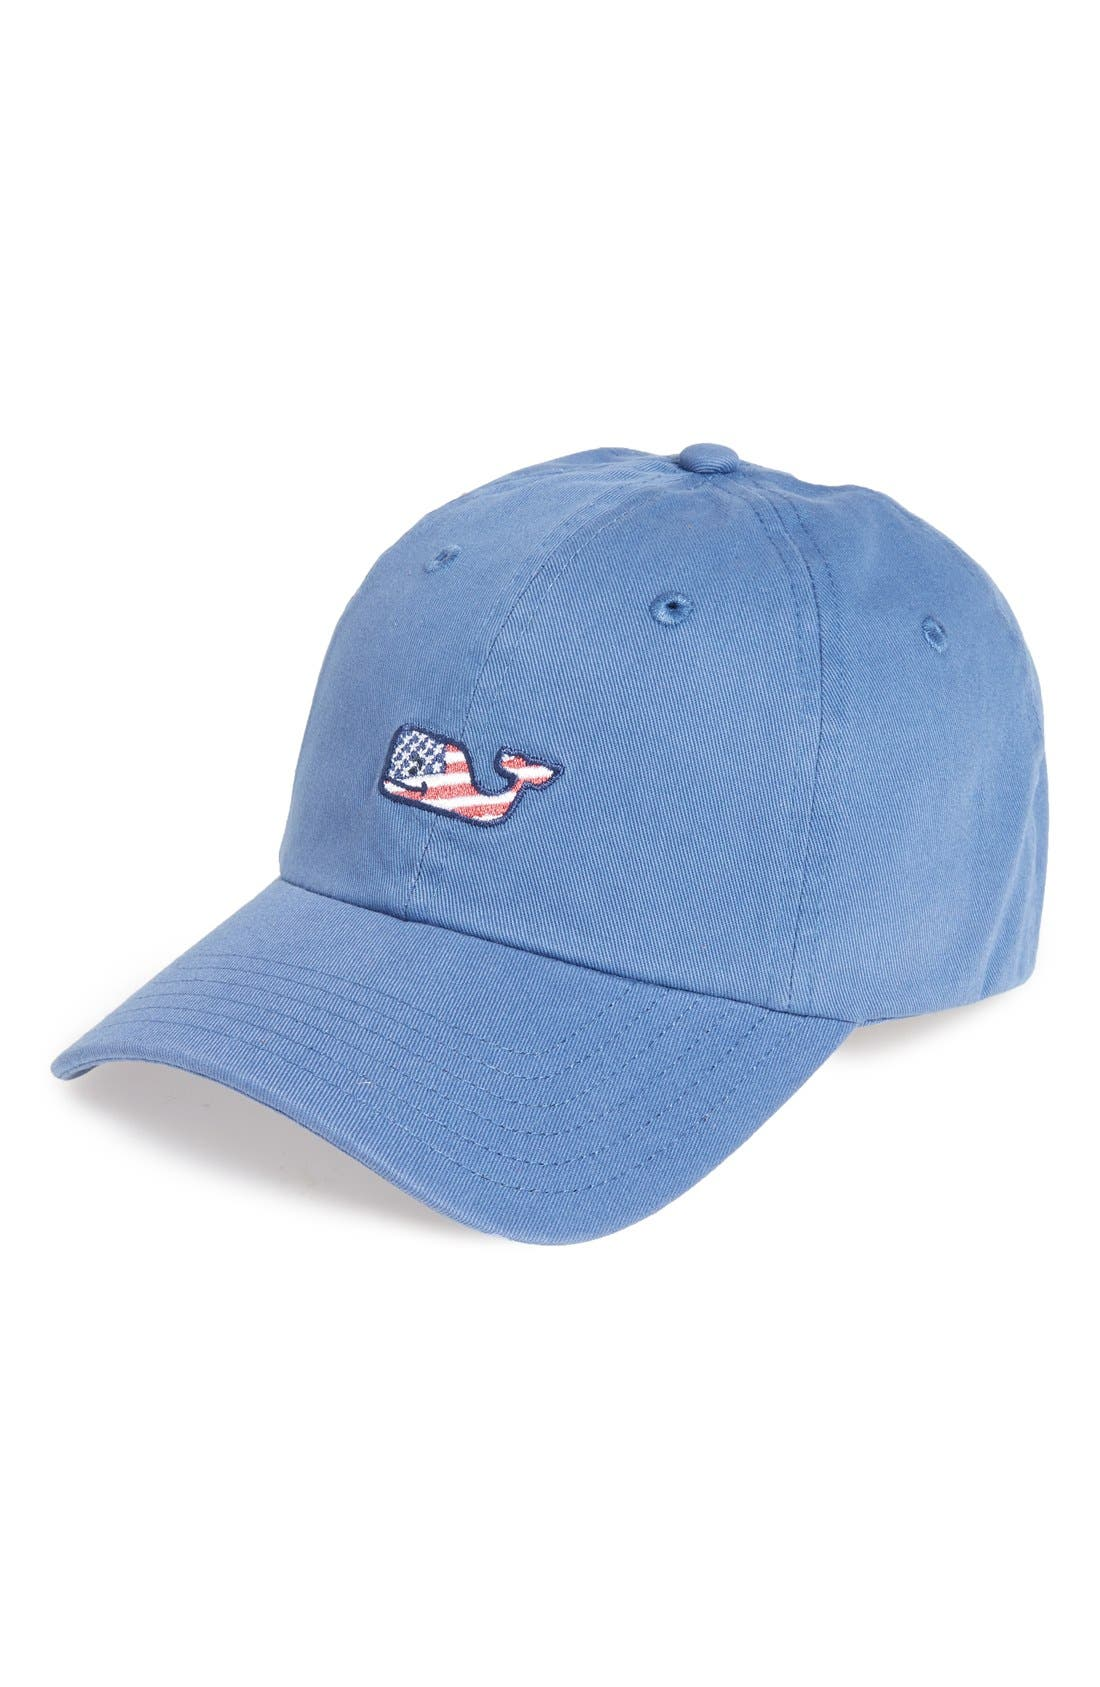 Main Image - vineyard vines Flag Whale Logo Baseball Cap